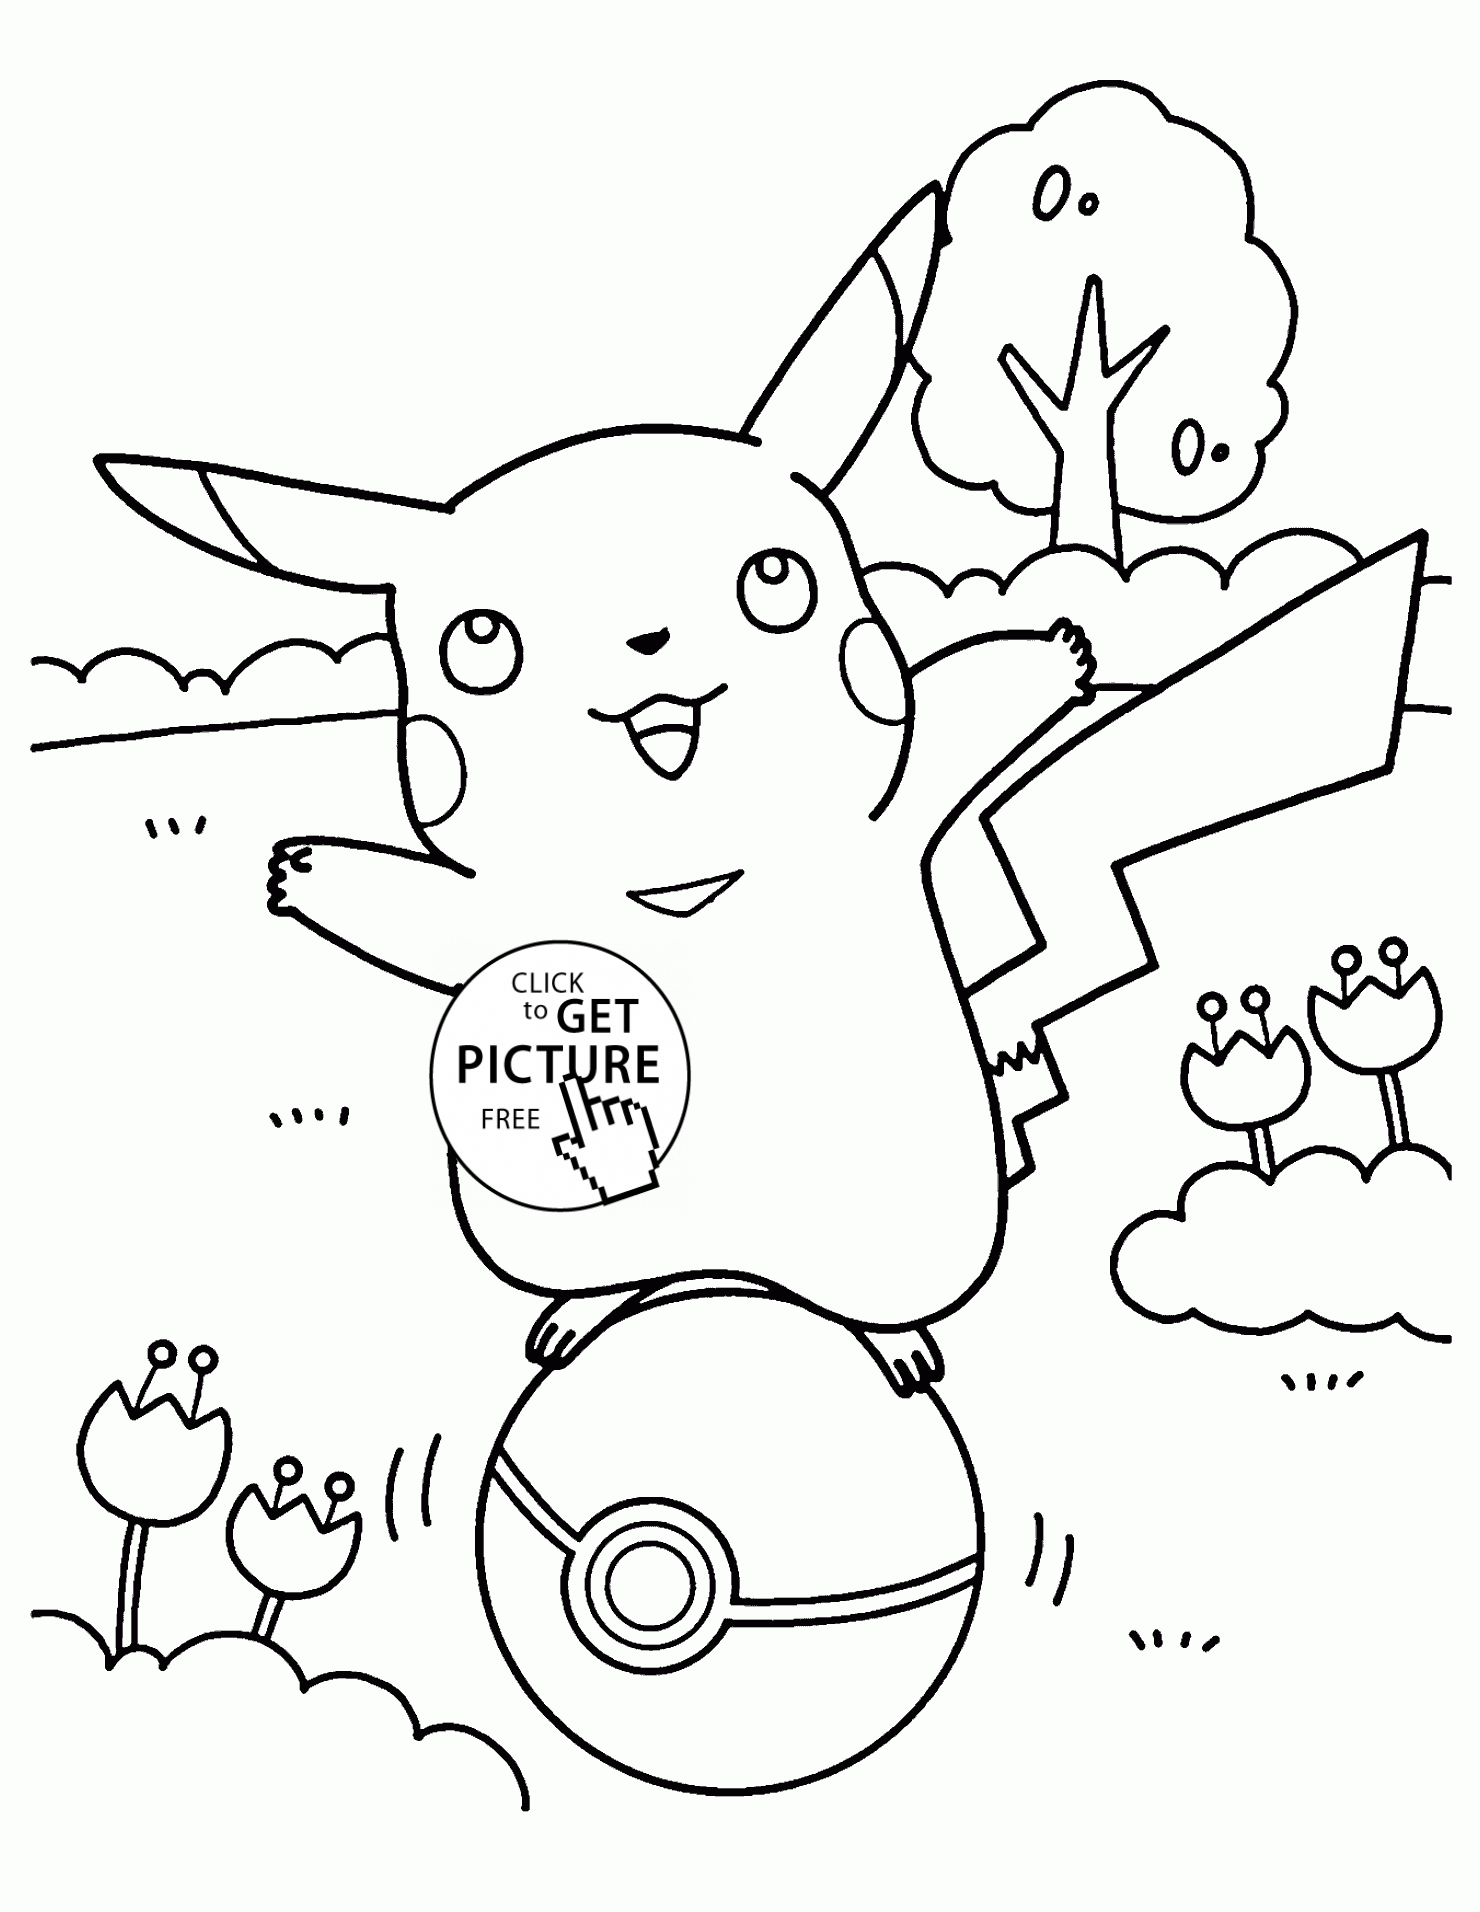 Ausmalbilder Pokemon Pikachu : 28 Pokemon Coloring Pages Pikachu Images Free Coloring Pages Part 3